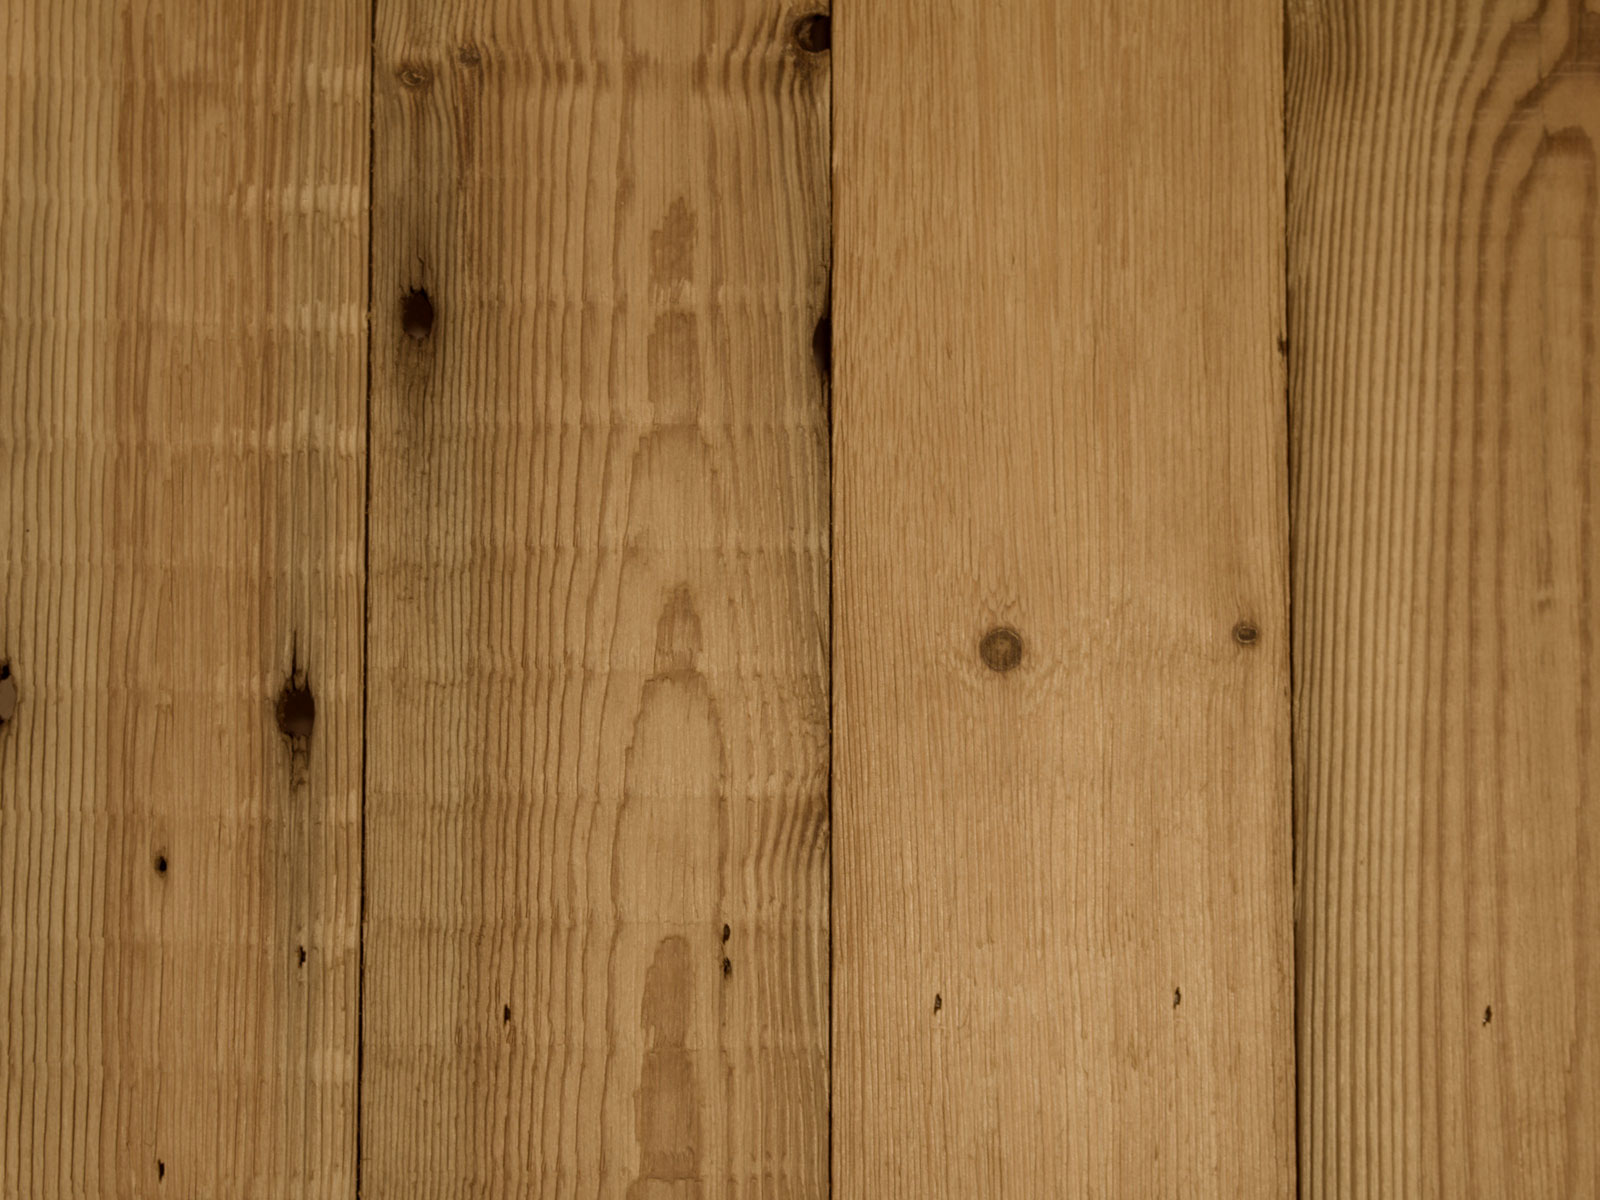 Light pine cladding